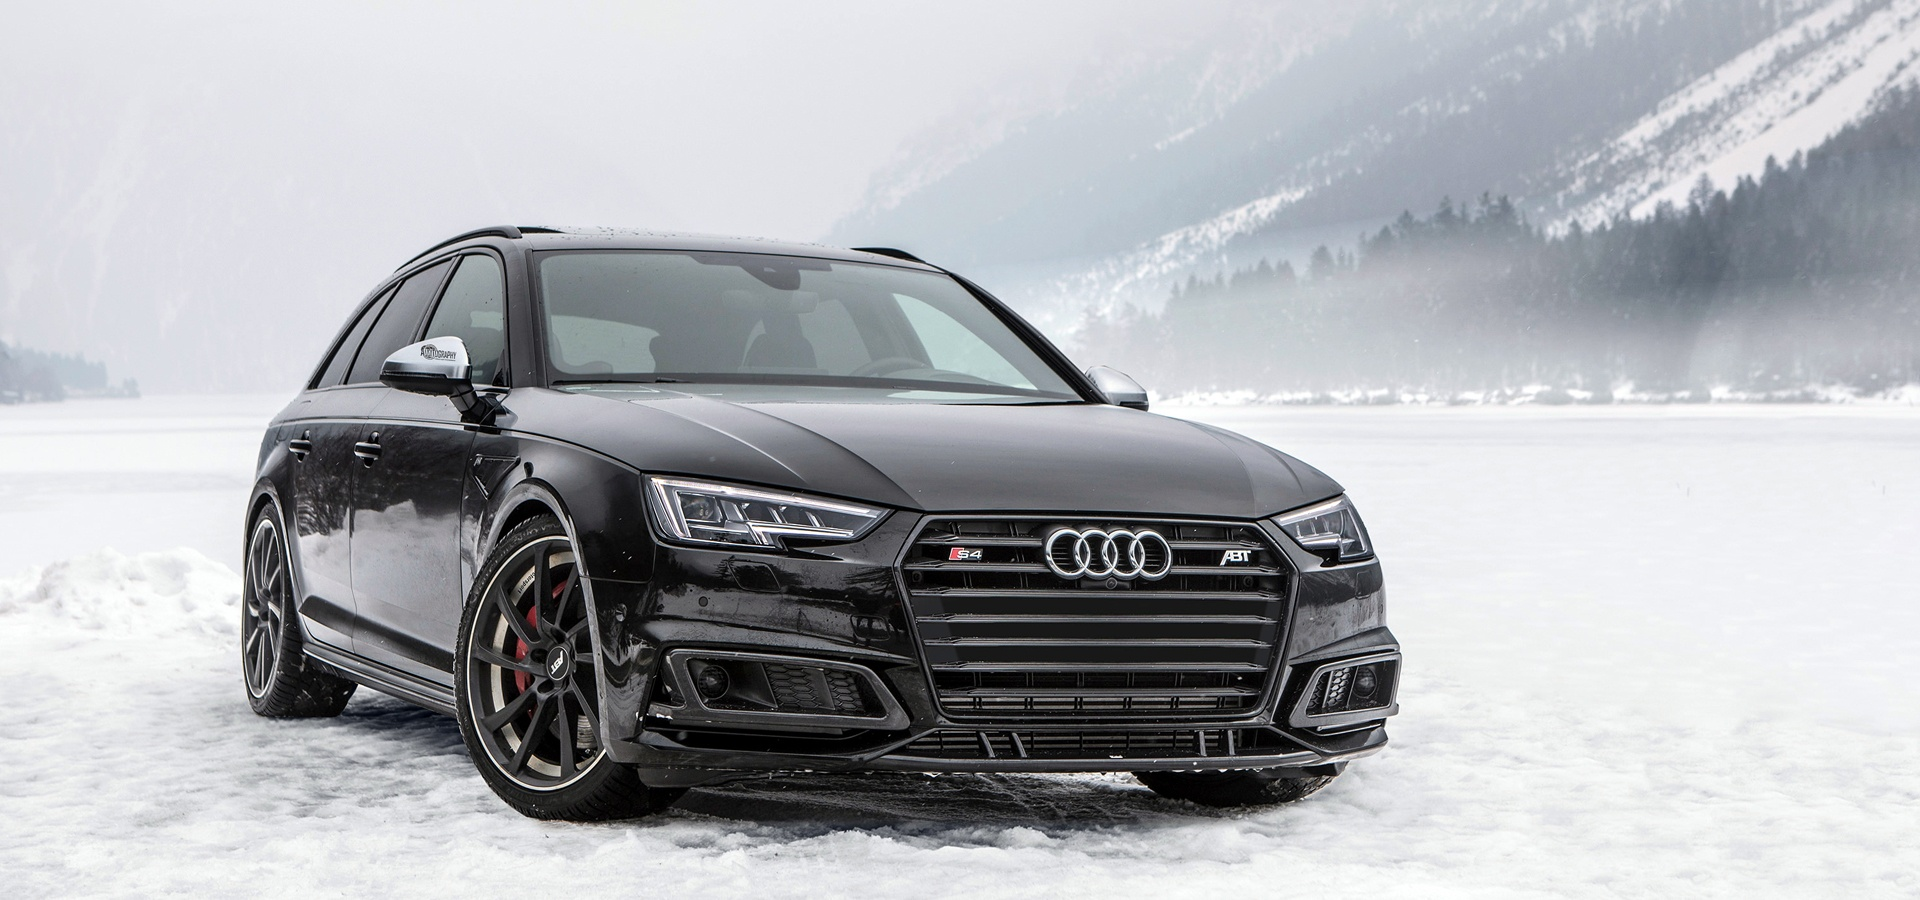 Audi A4 Modified Parts Best Of Tuning Abt Sportsline-1212 Of Best Of Audi A4 Modified Parts